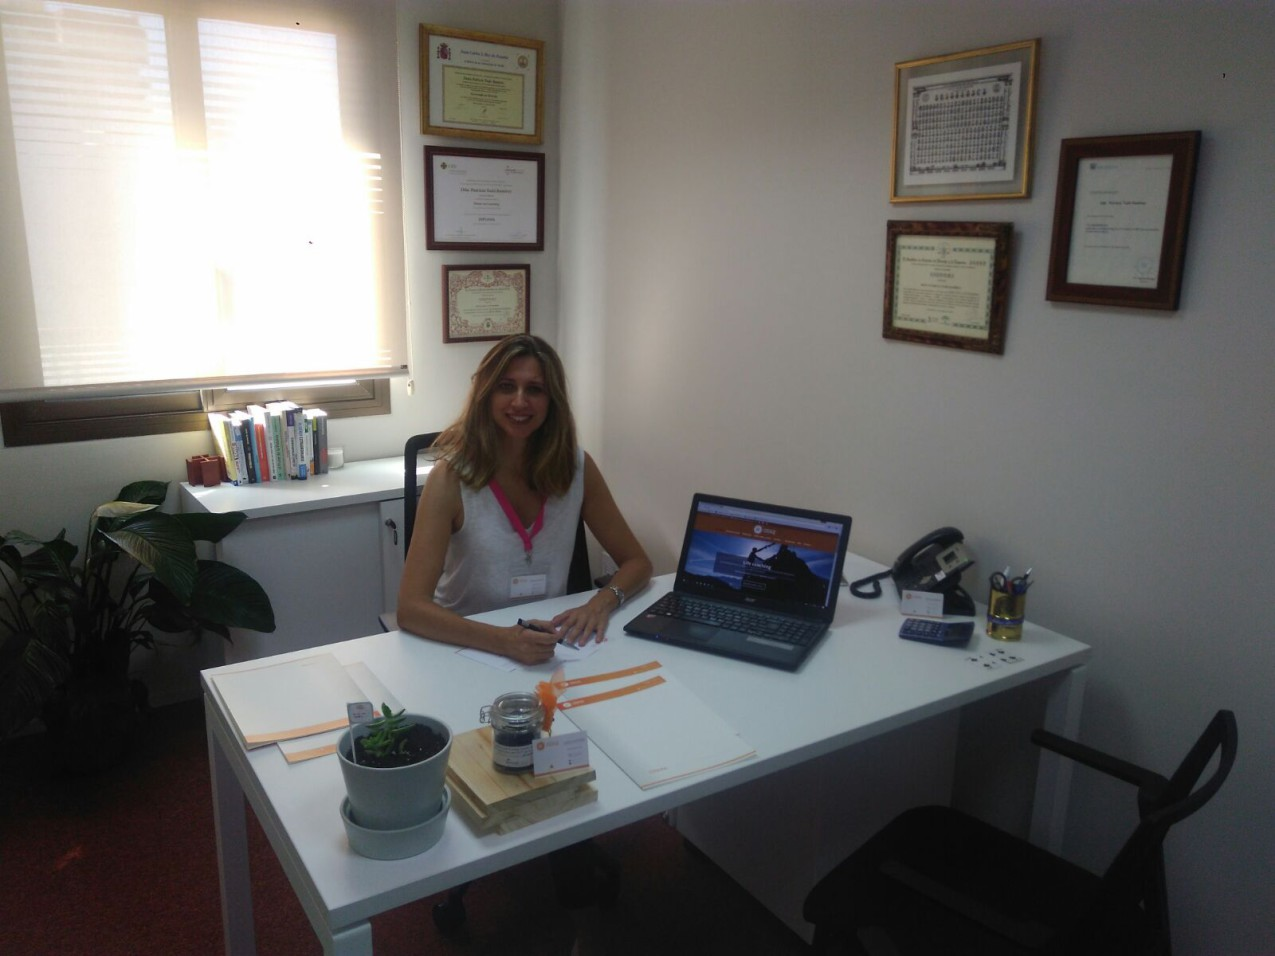 Patricia duro instituto de coaching